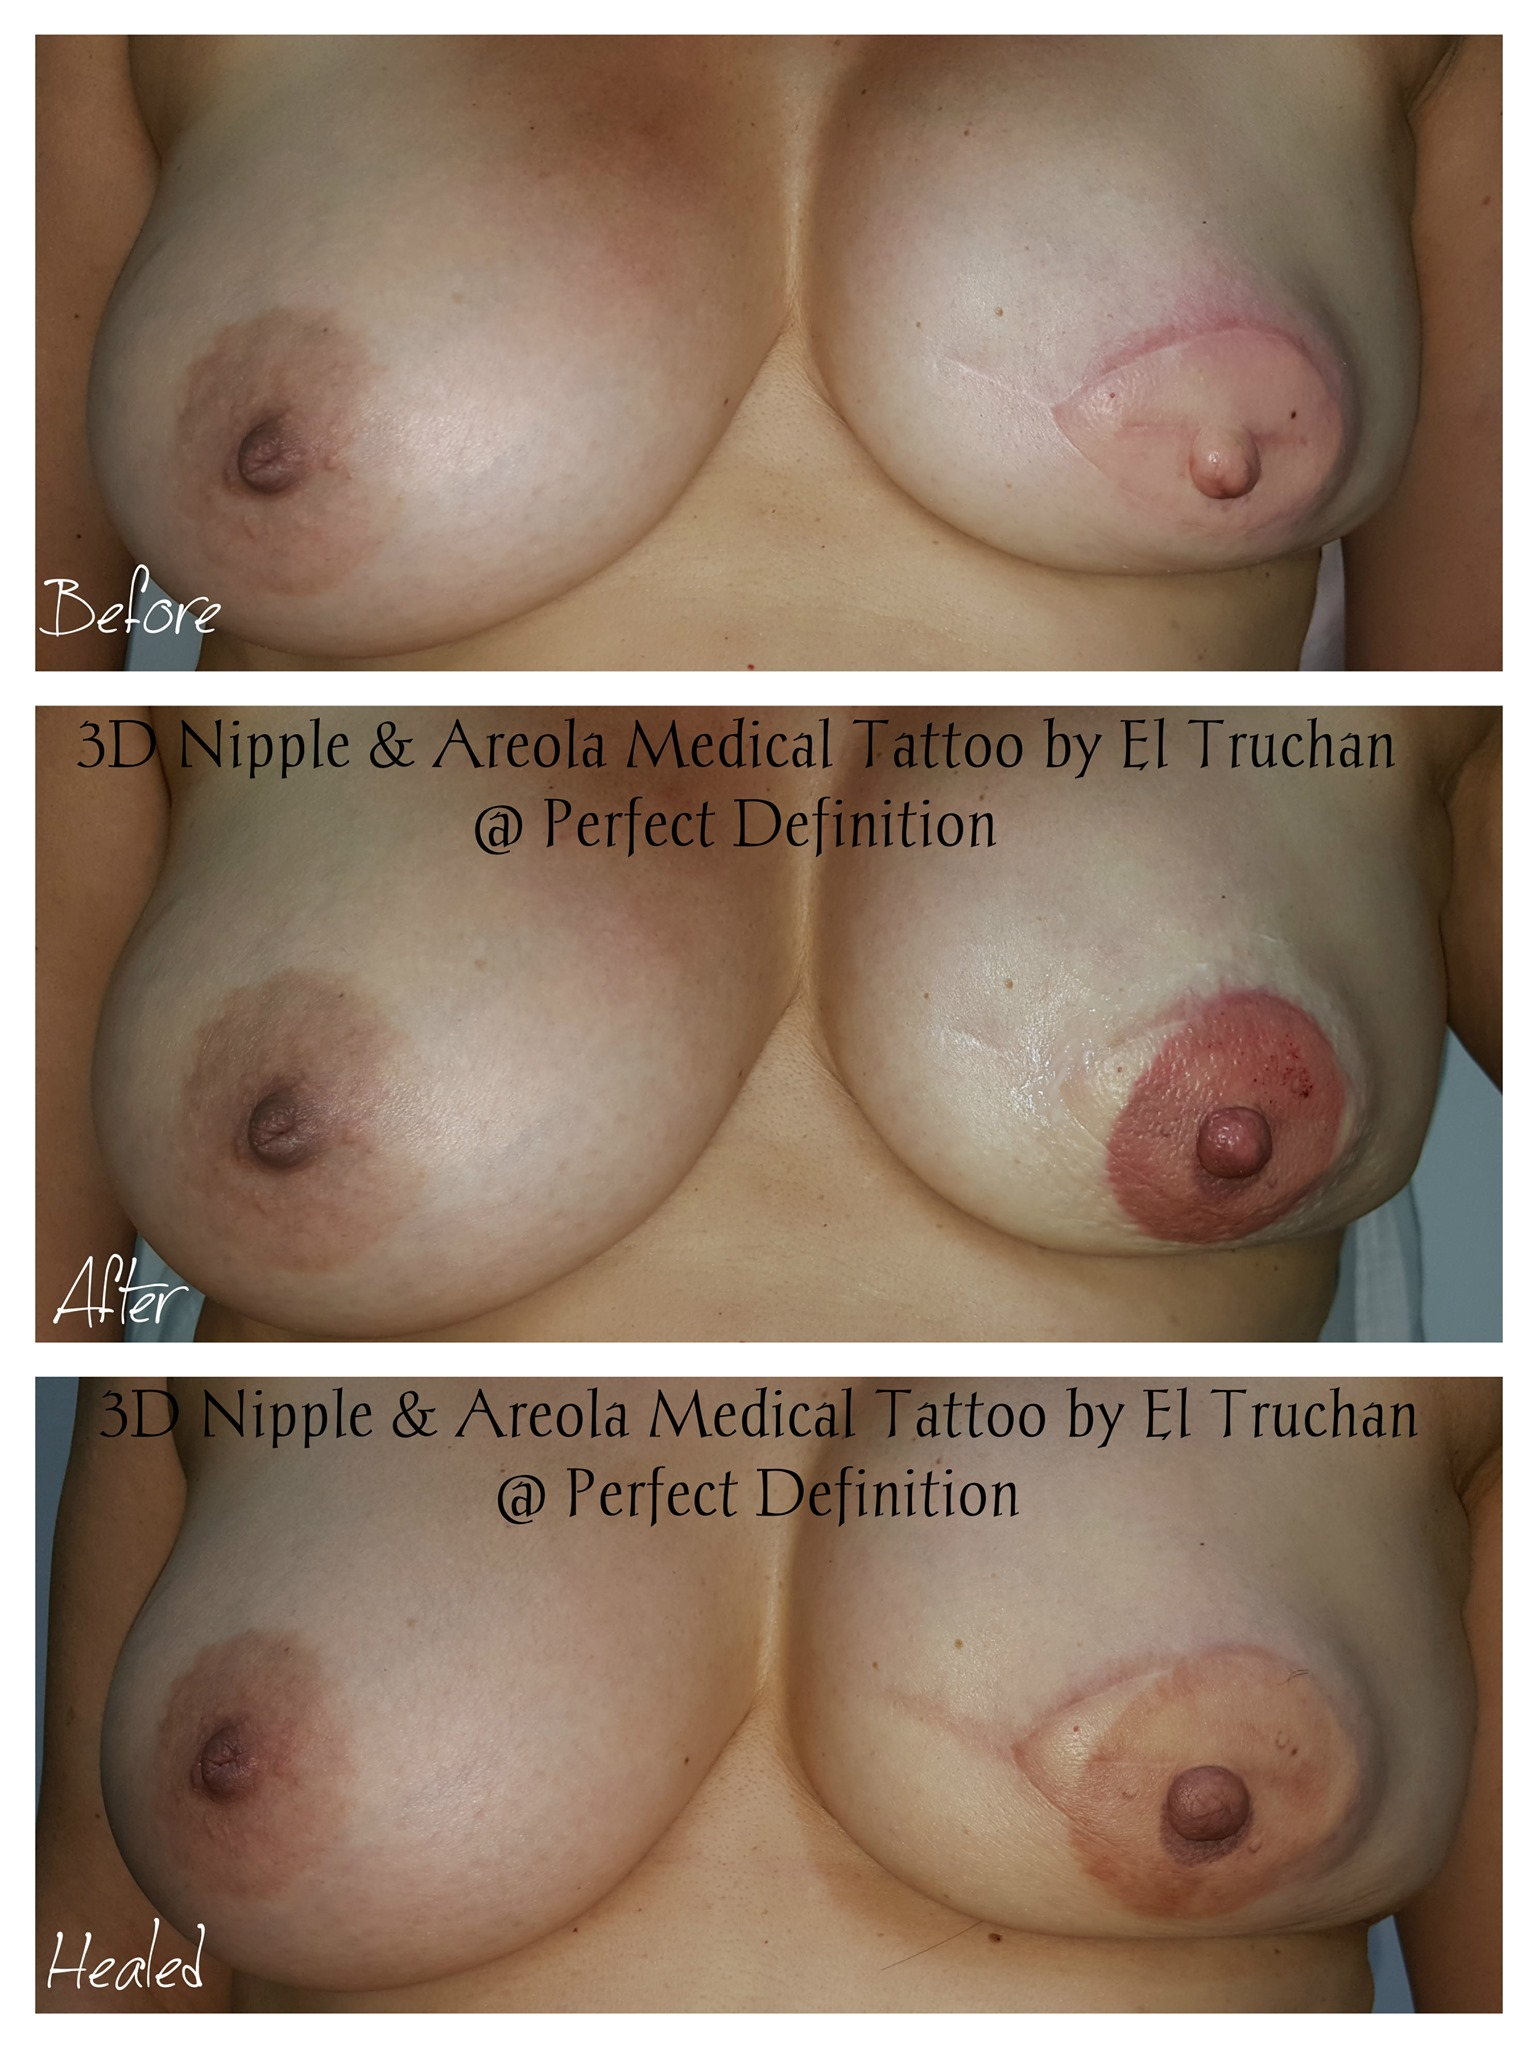 3D Nipple & Areola Reconstruction medica